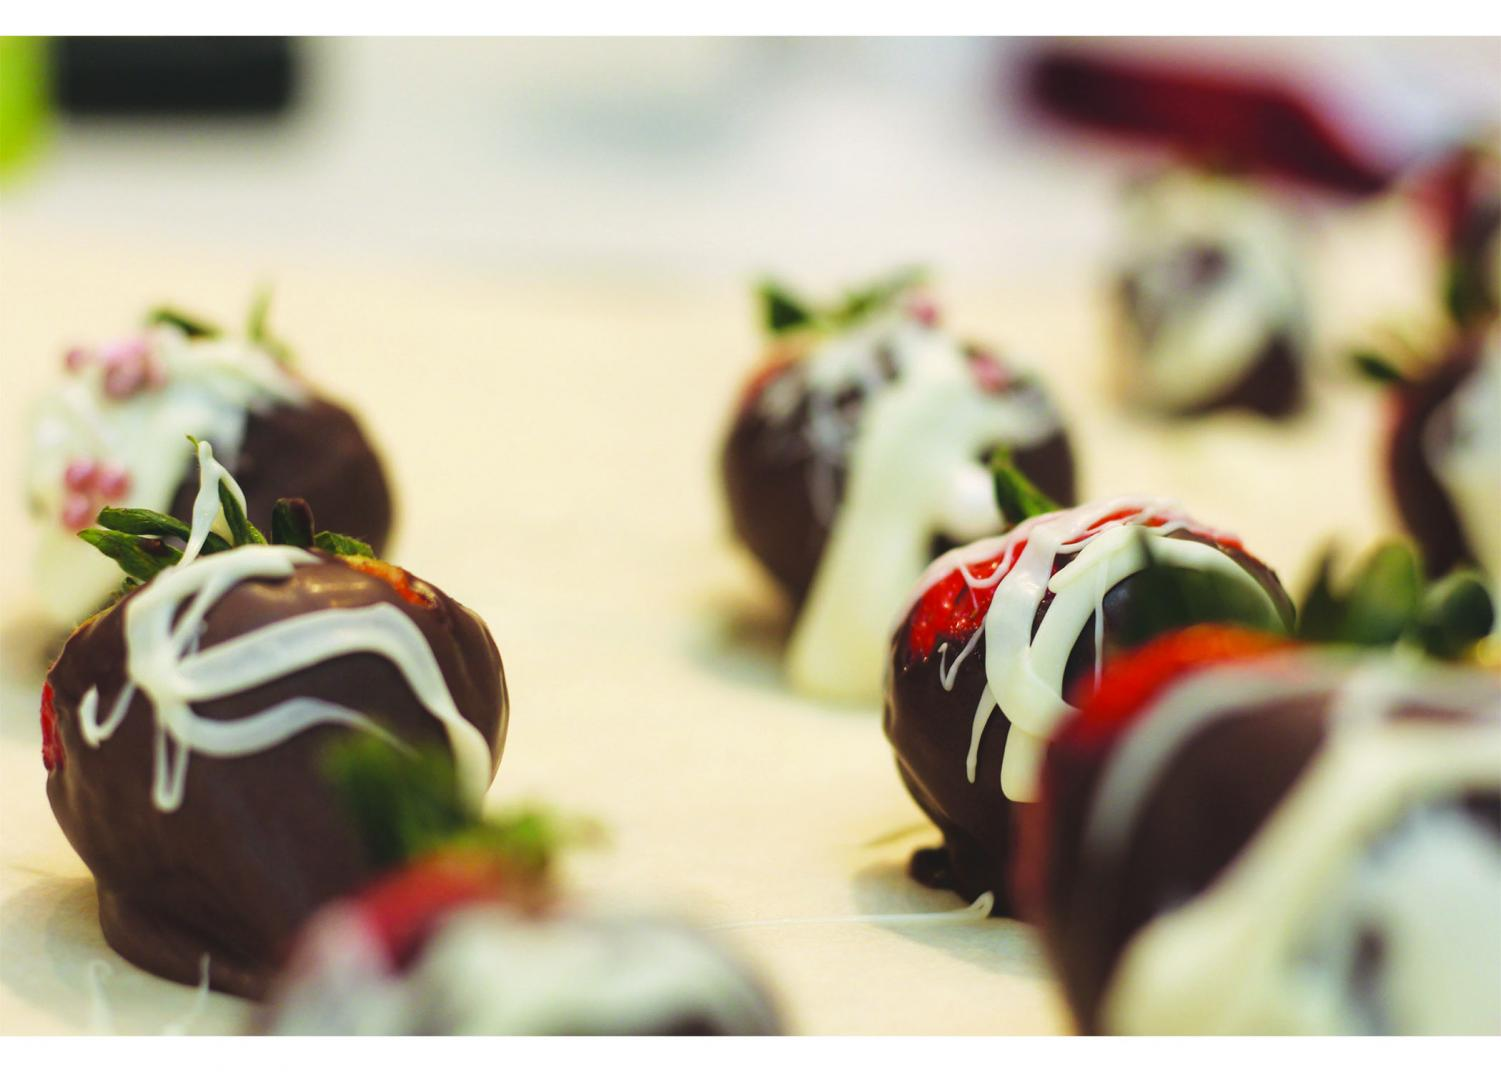 Maggie Seidel '22 creates these festive white chocolate drizzled and chocolate covered strawberries from the original recipe by Driscoll's berries.